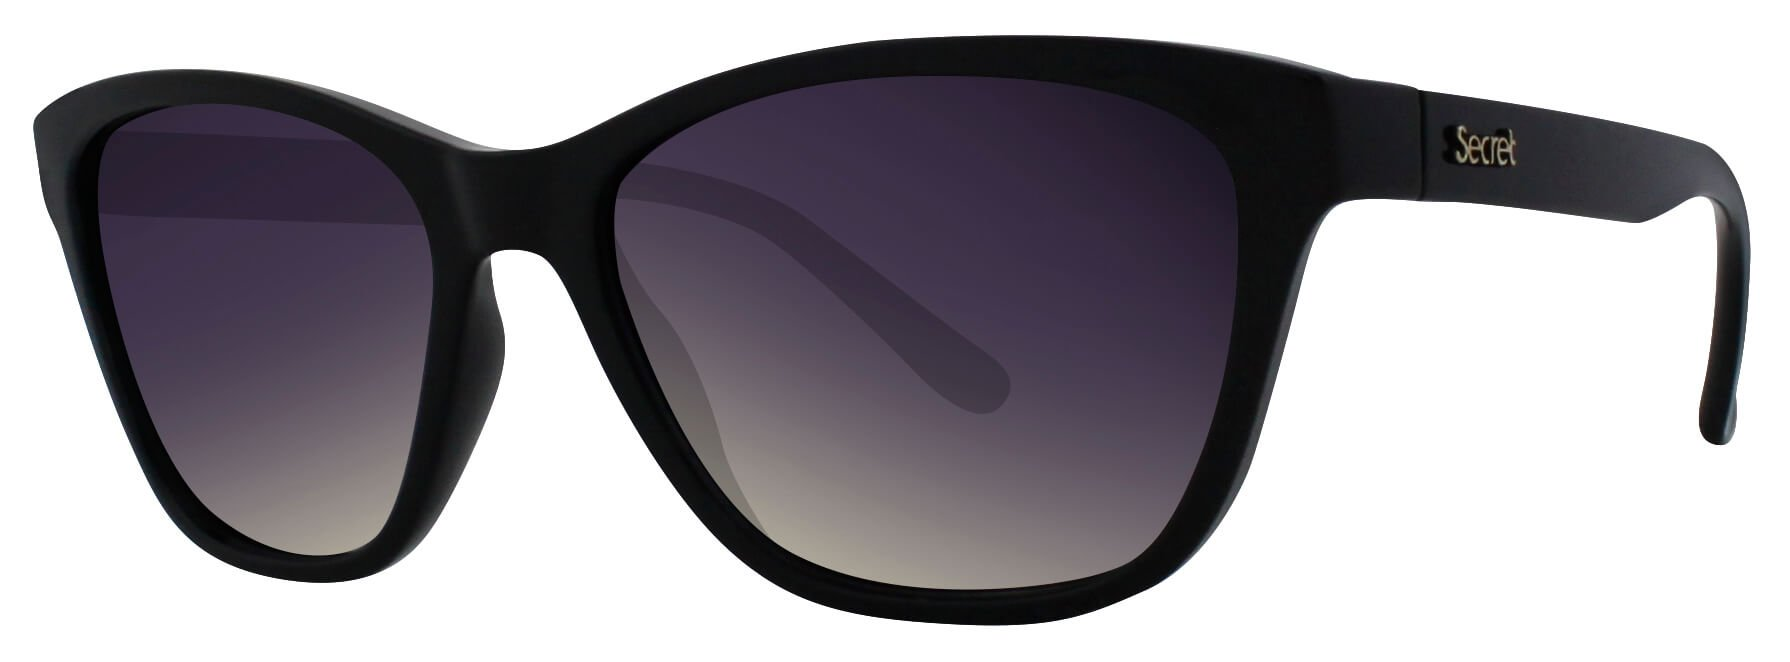 ÓC SECRET NARA GLOSS BLACK / POLARIZED GRADIENT GRAY